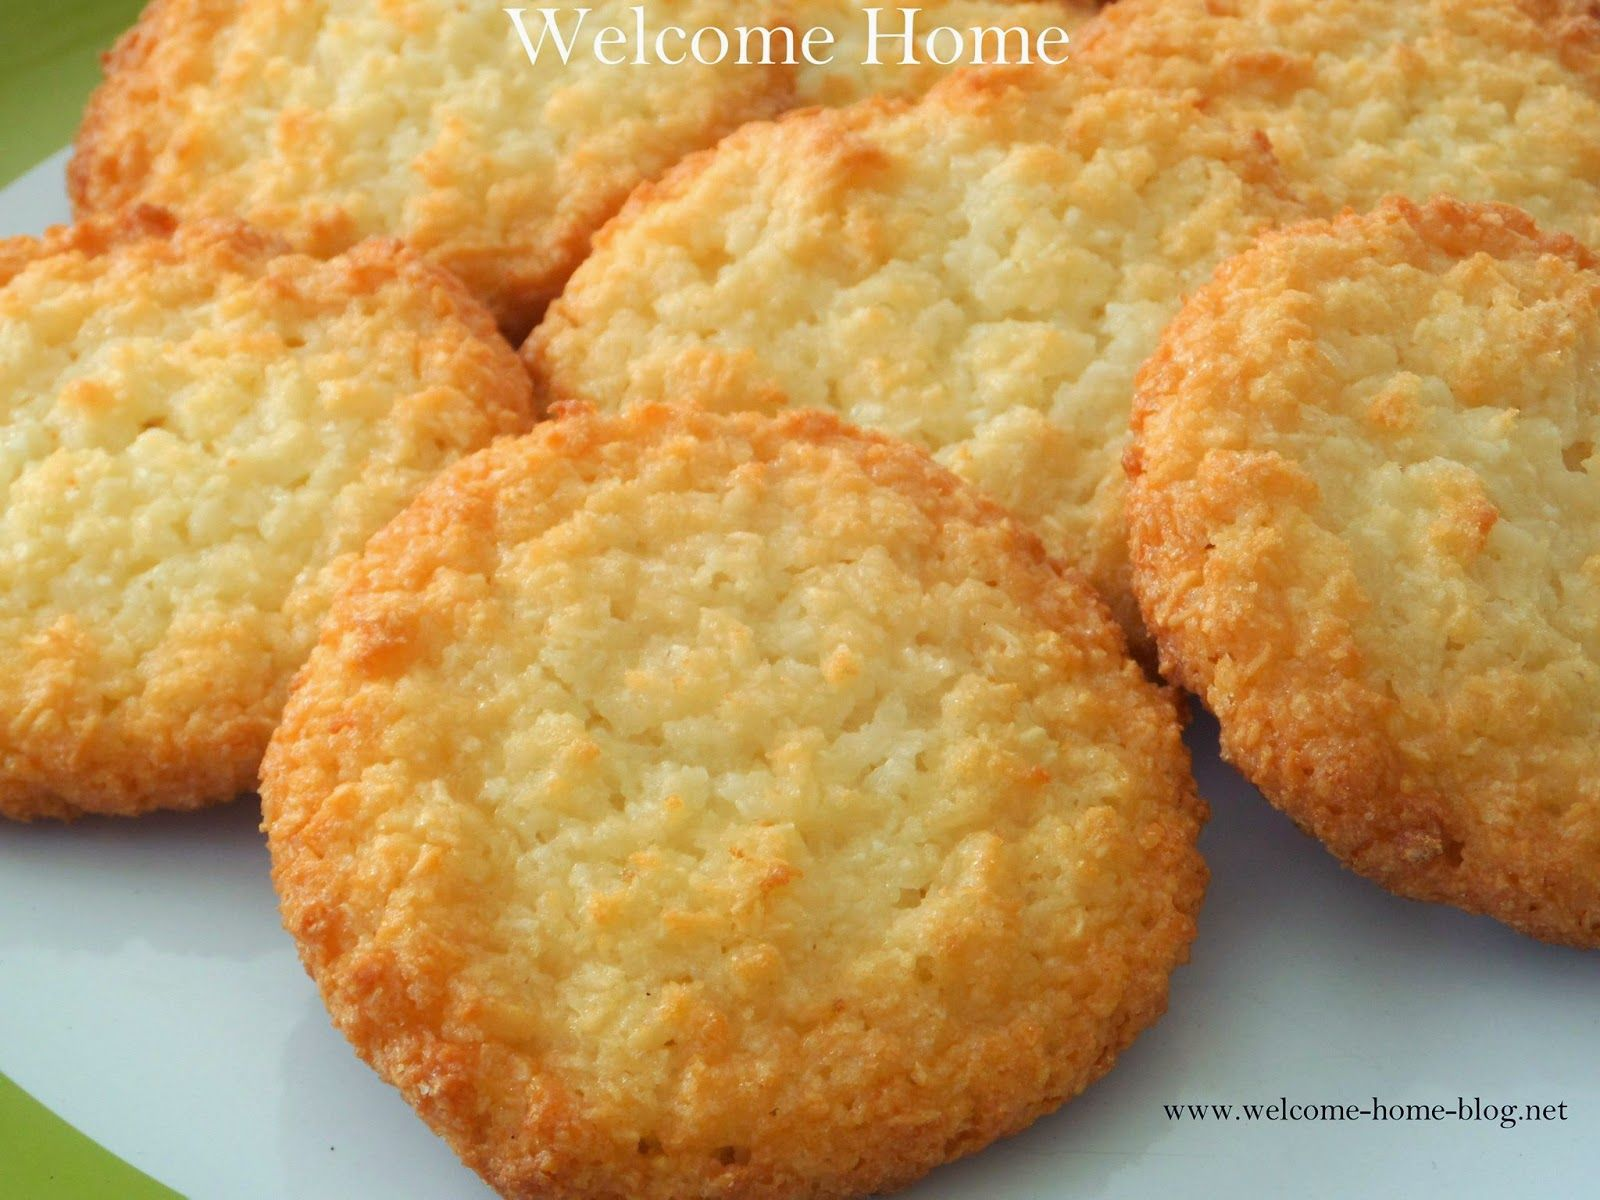 Welcome Home Coconut Cookies Coconut Cookies Recipes Coconut Recipes Yummy Cookies